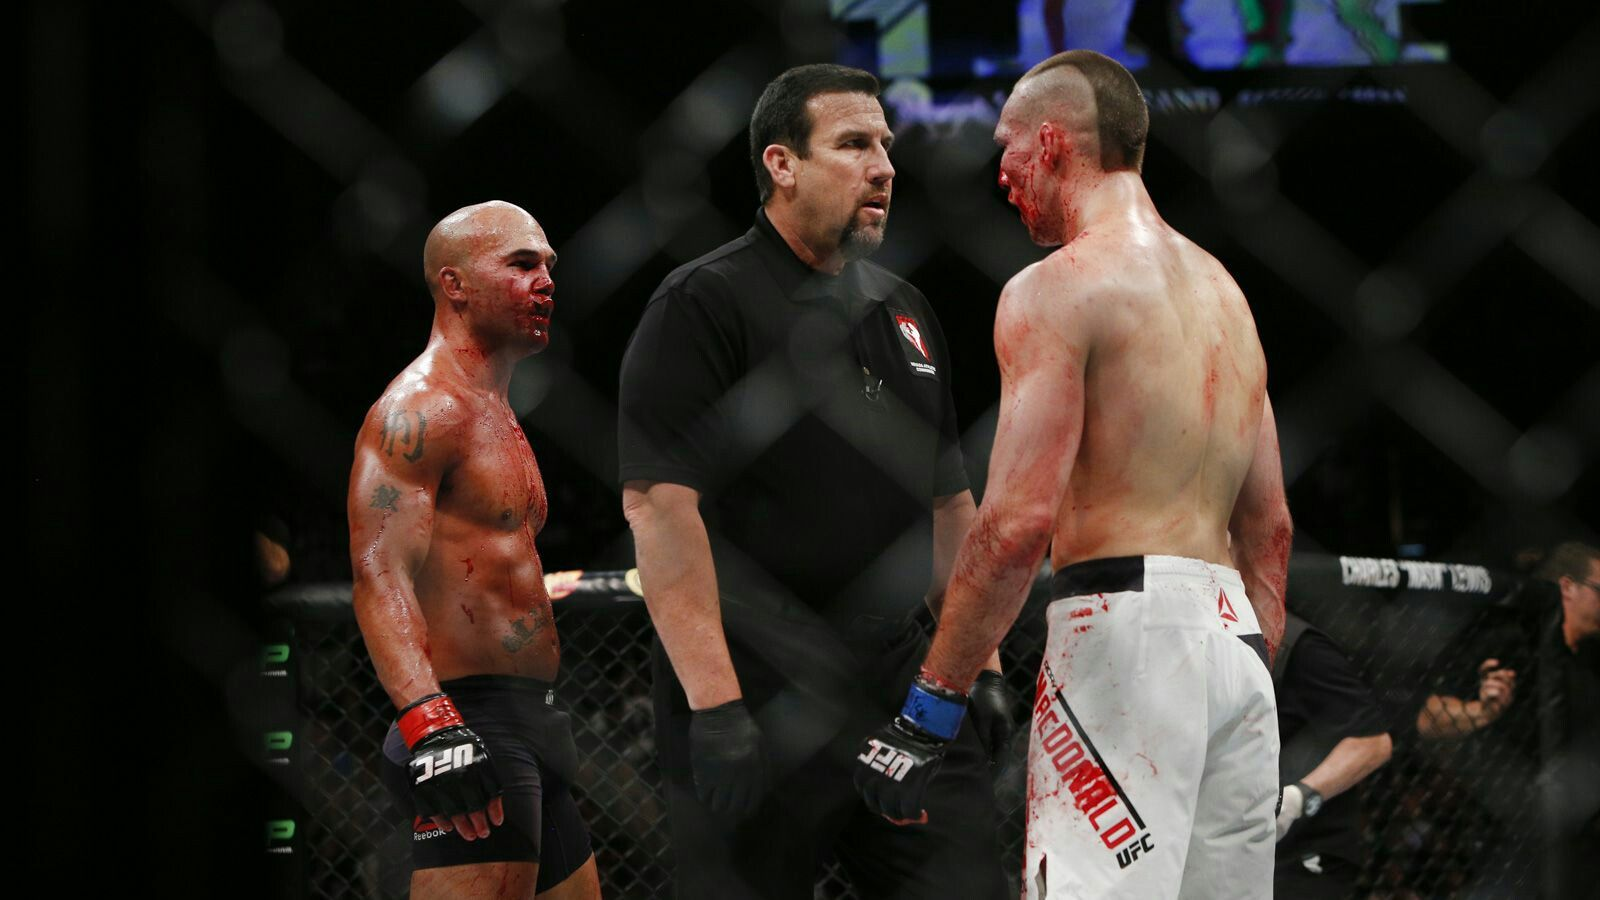 Robbie Lawler Vs Rory Macdonald Ufc 189 Ufc Ufc Fighters